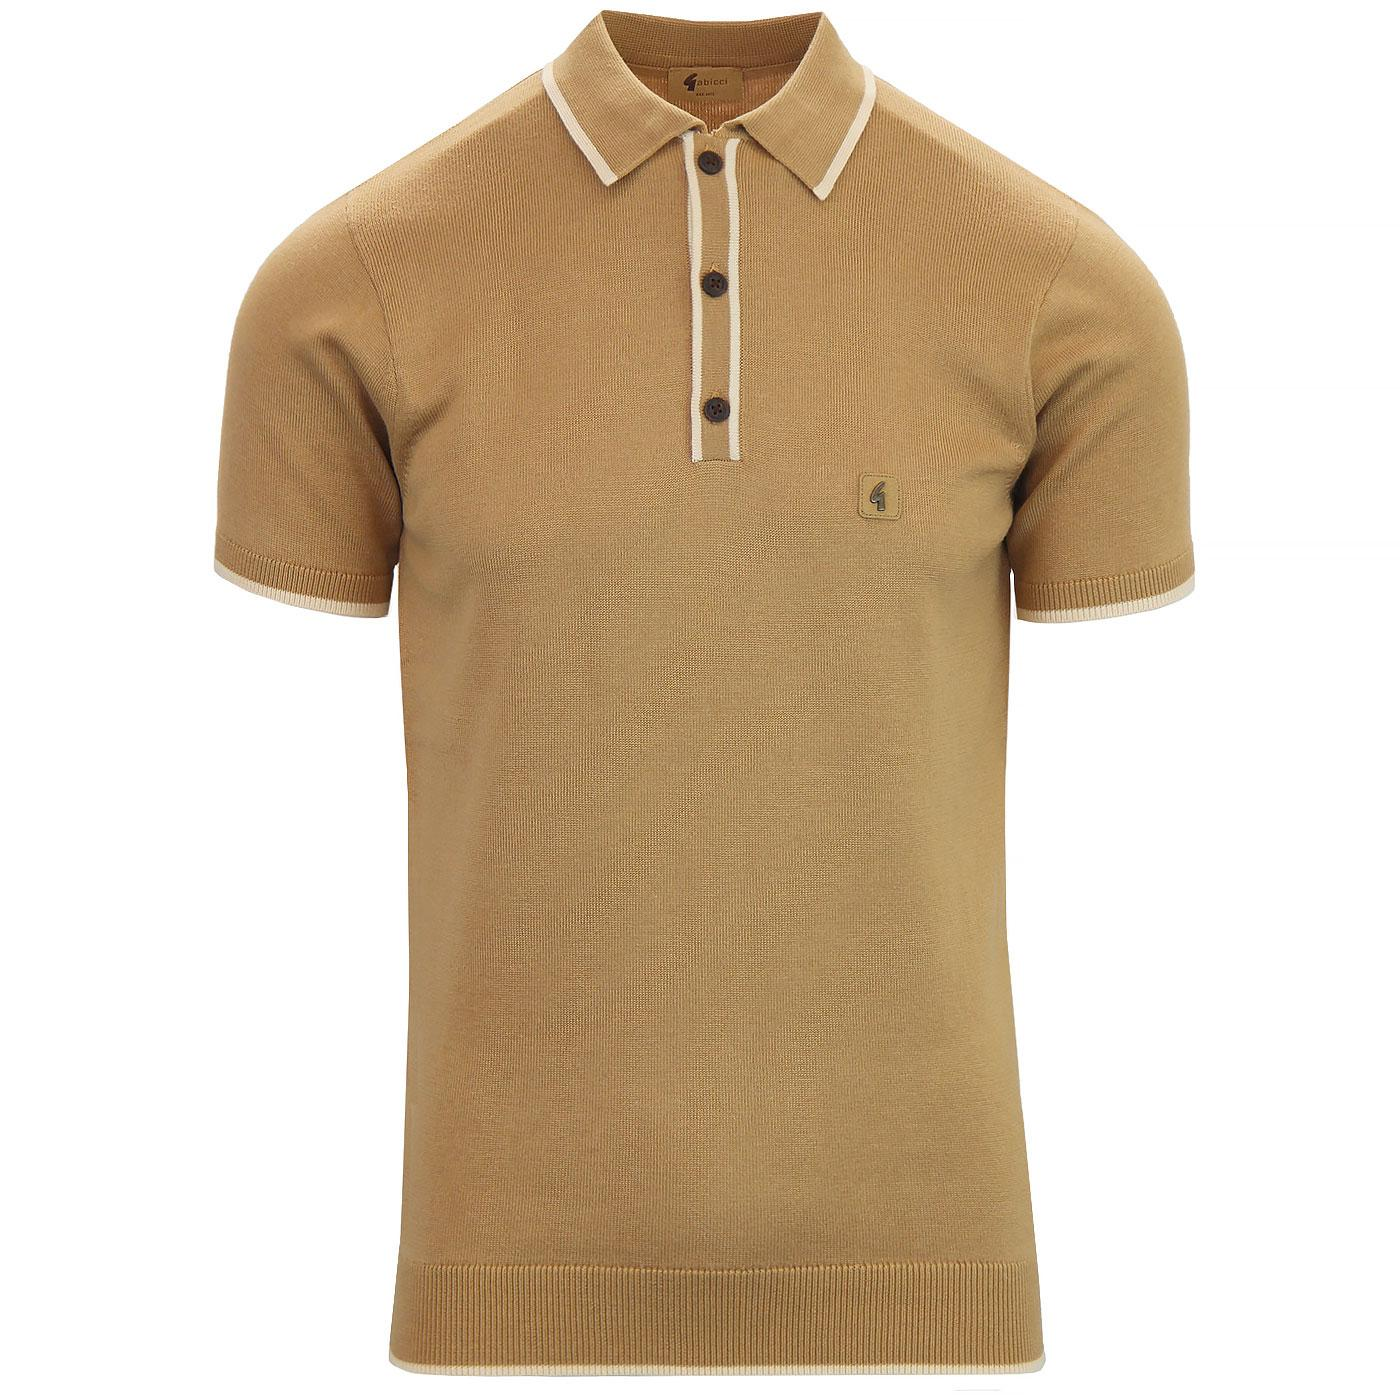 Lineker GABICCI VINTAGE Retro Tipped Knit Polo BS